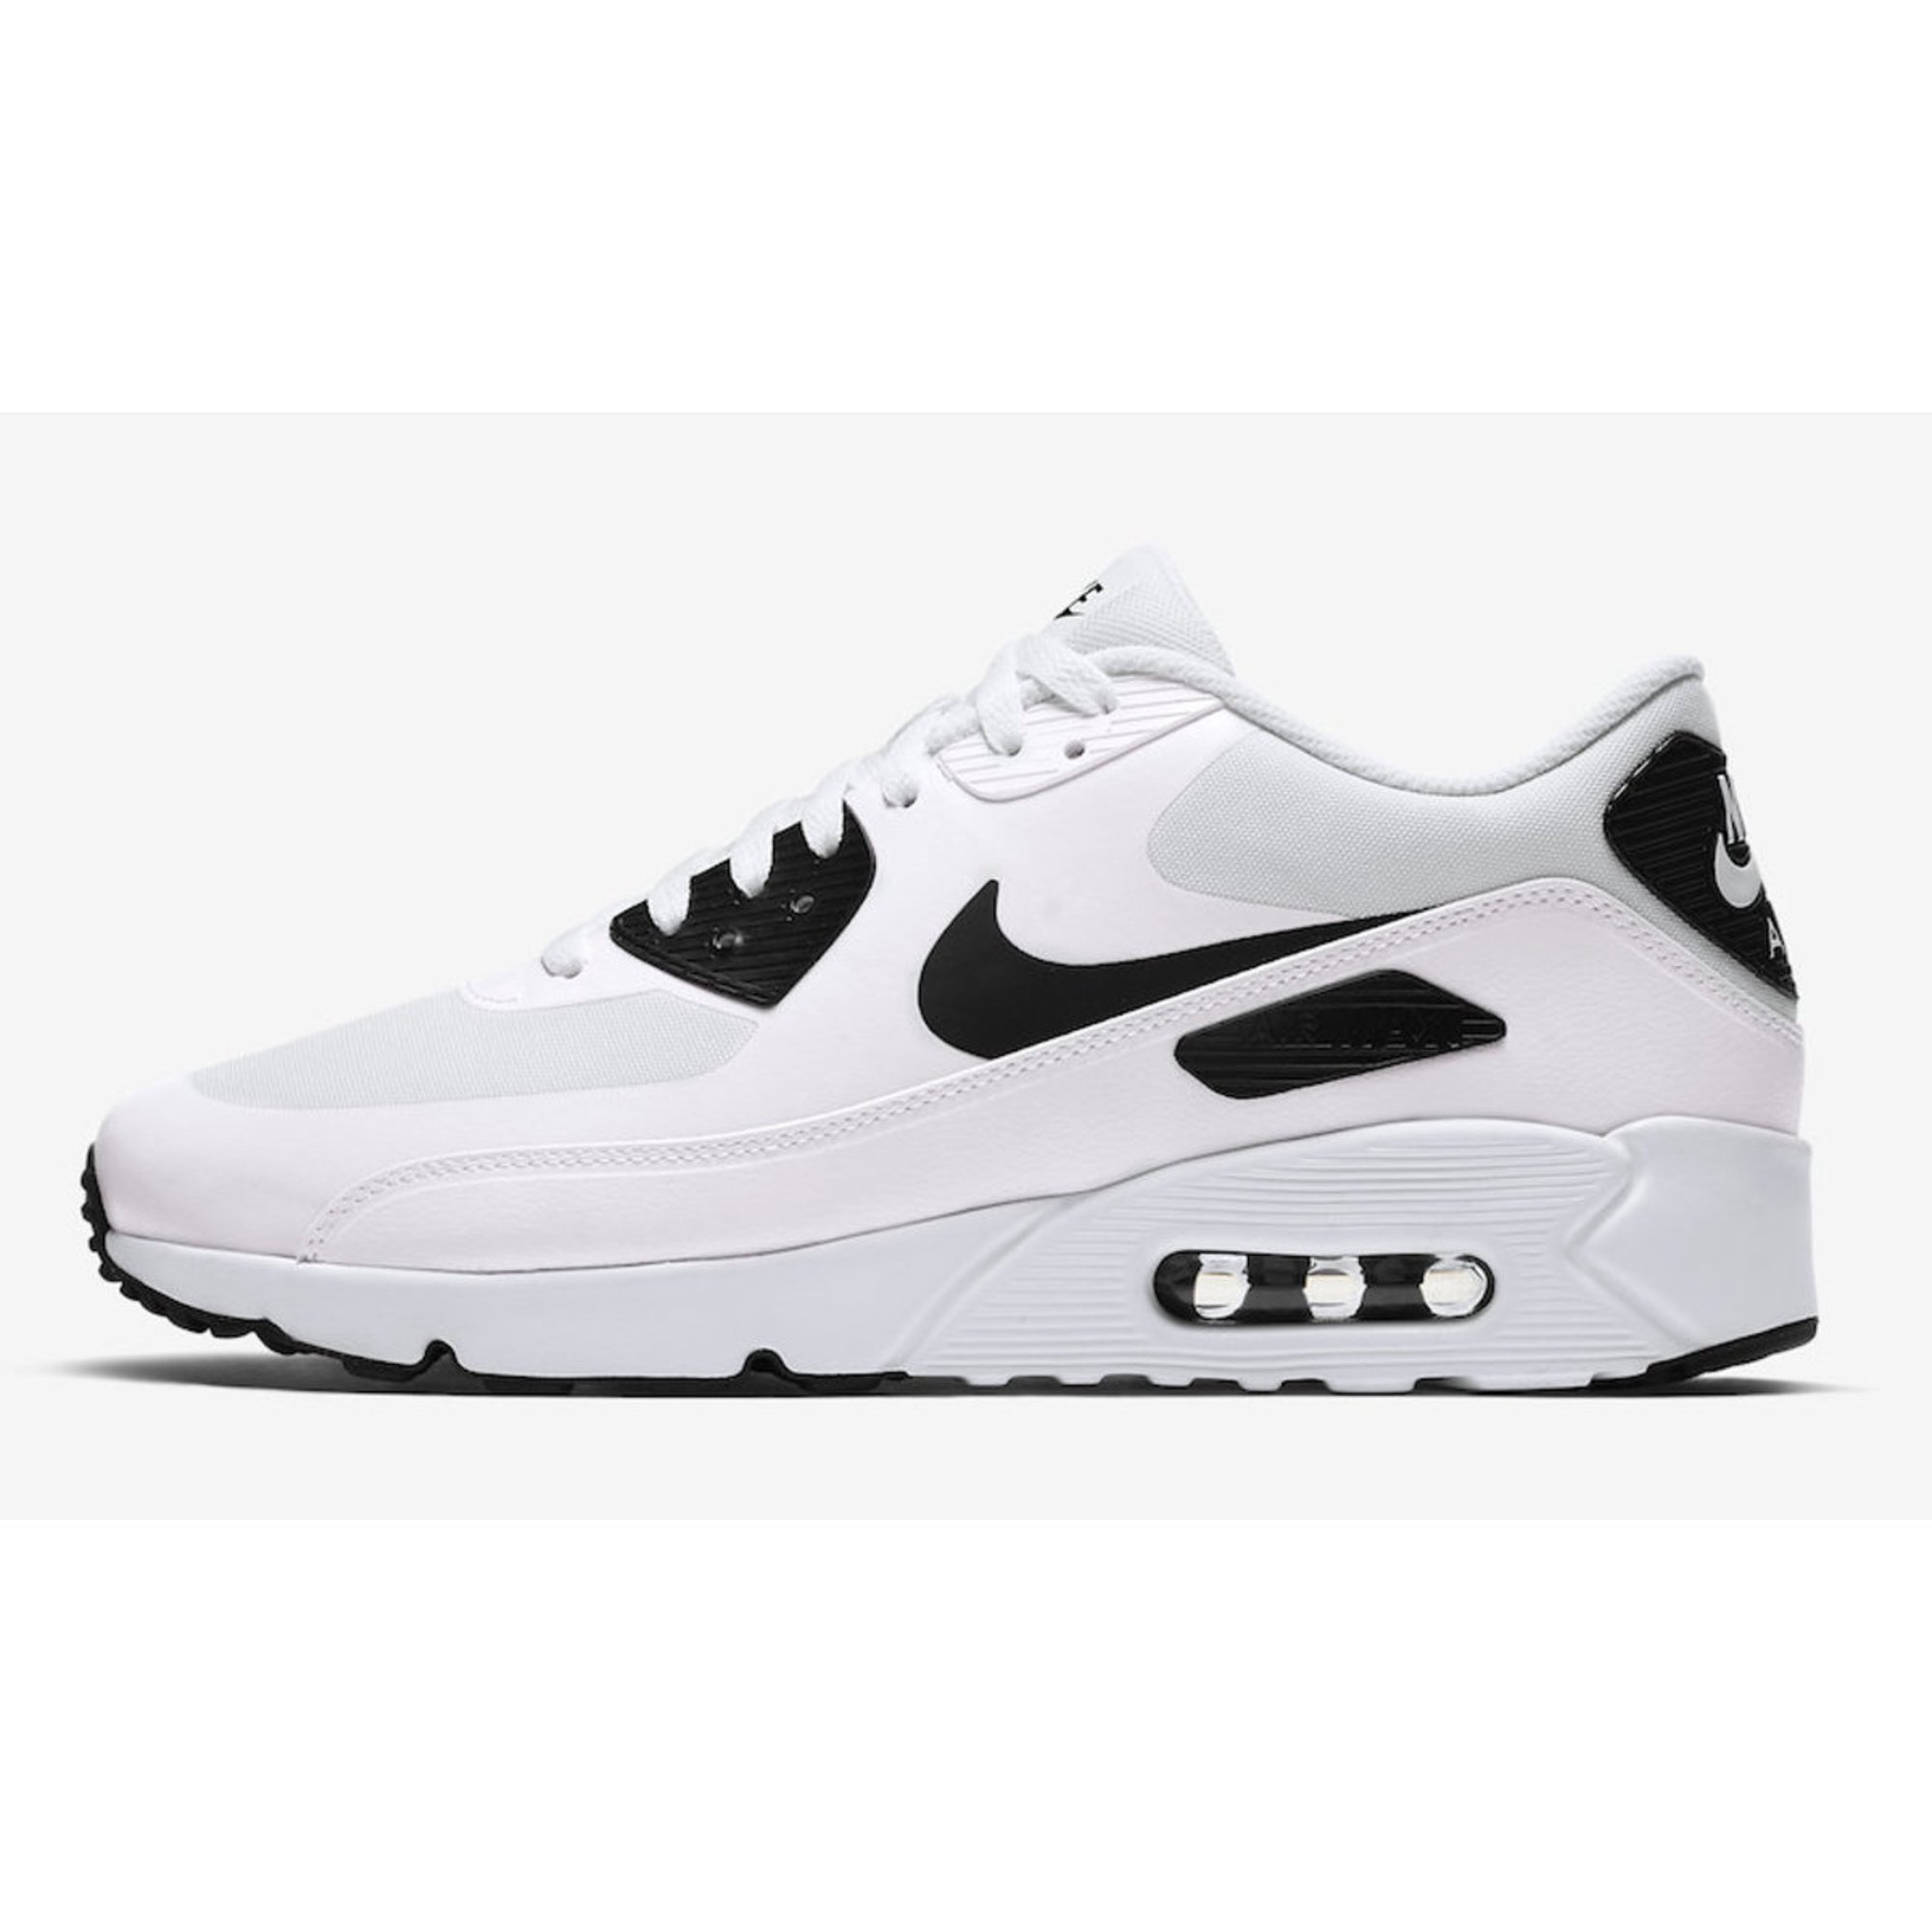 Nike Mens Air Max 90 Ultra 2.0 essential Low Top Lace Up